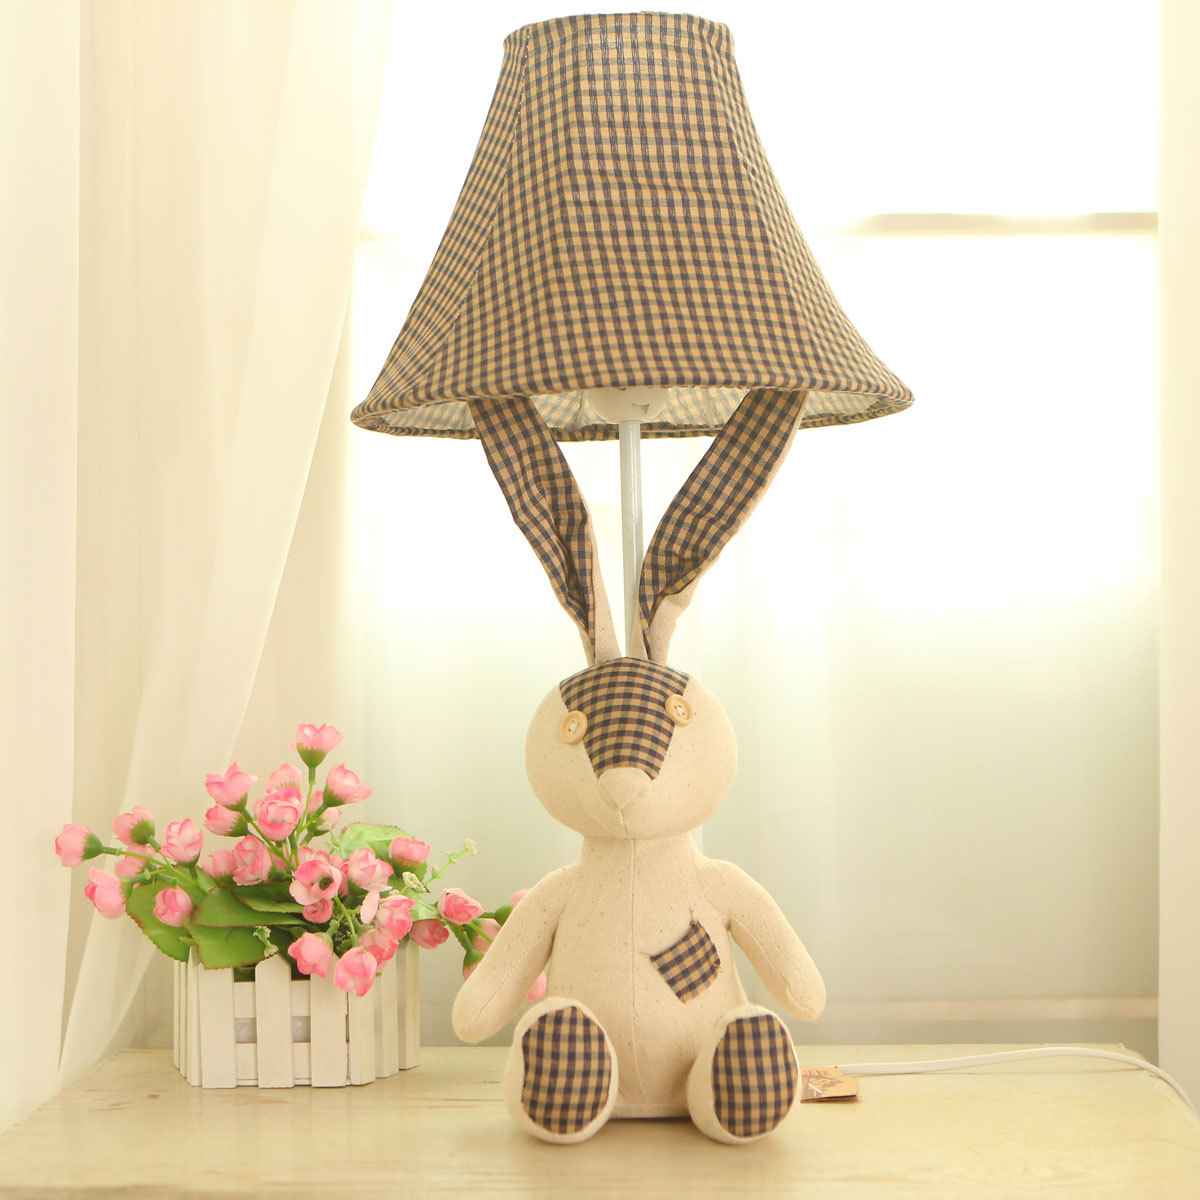 Hot selling quality rustic fabric grey beige plaid vintage cartoon hot selling quality rustic fabric grey beige plaid vintage cartoon bear table lamp childrens bedroom lighting night lights lamp in table lamps from lights geotapseo Choice Image